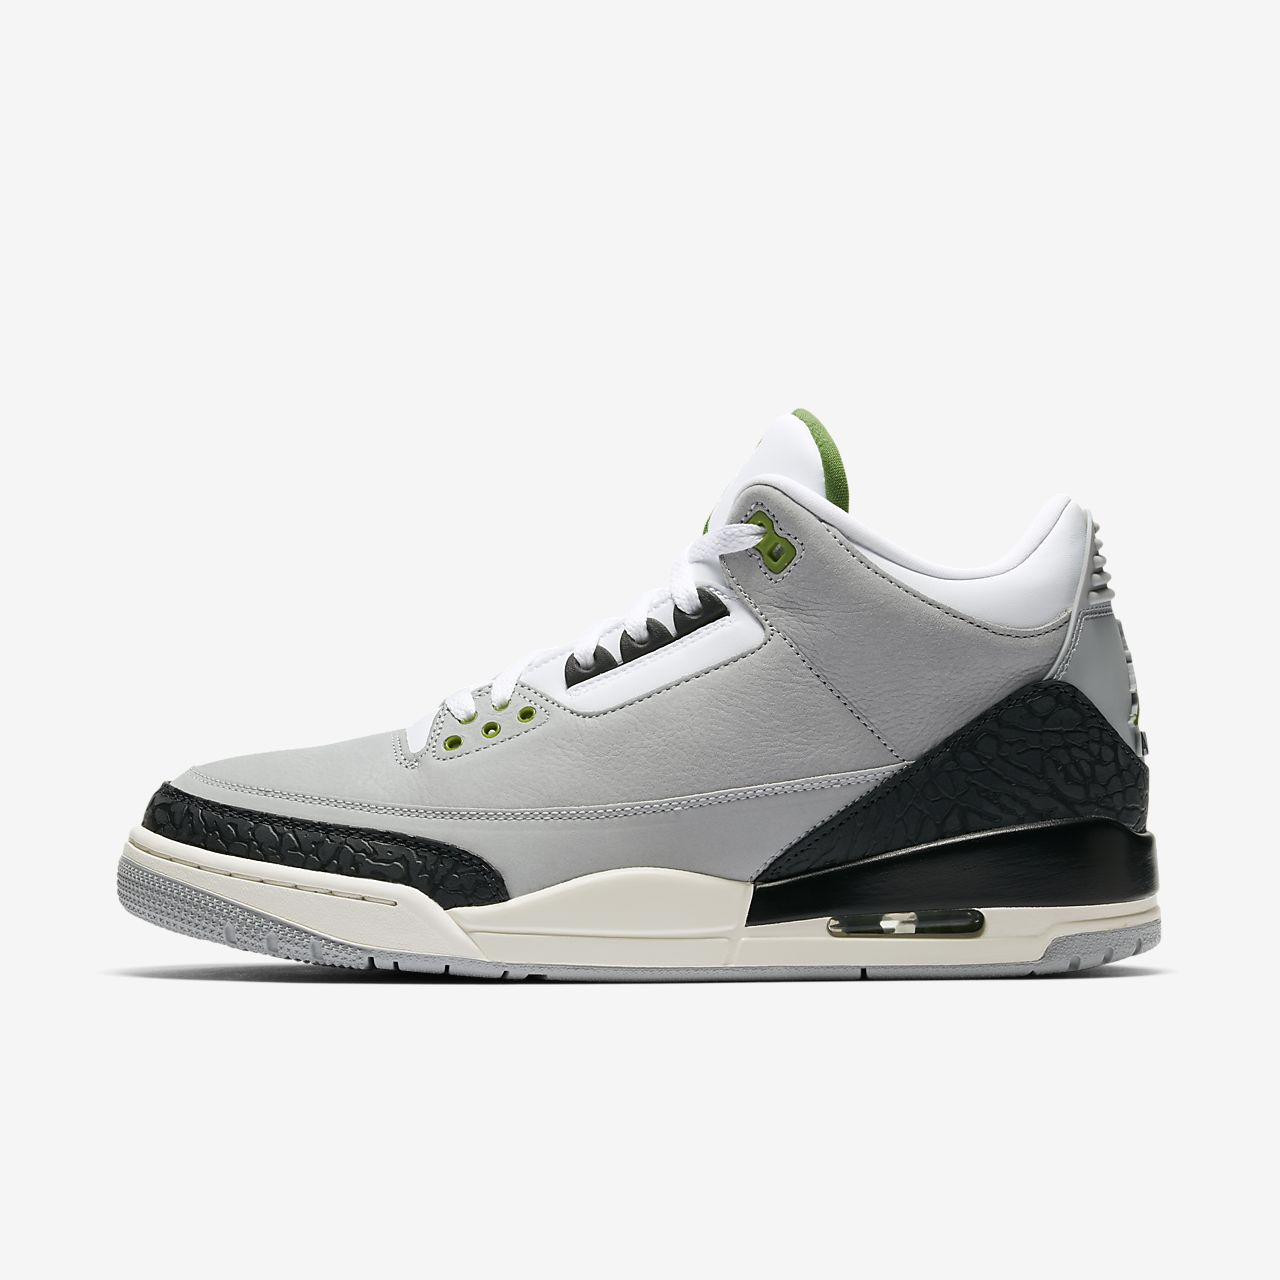 ea3aacec338 discount code for men nike air jordan 3 retro white gray blue outlet  onlinenike air max thea ca3dd 28316; authentic air jordan 3 retro mens shoe  36c4f 58e49